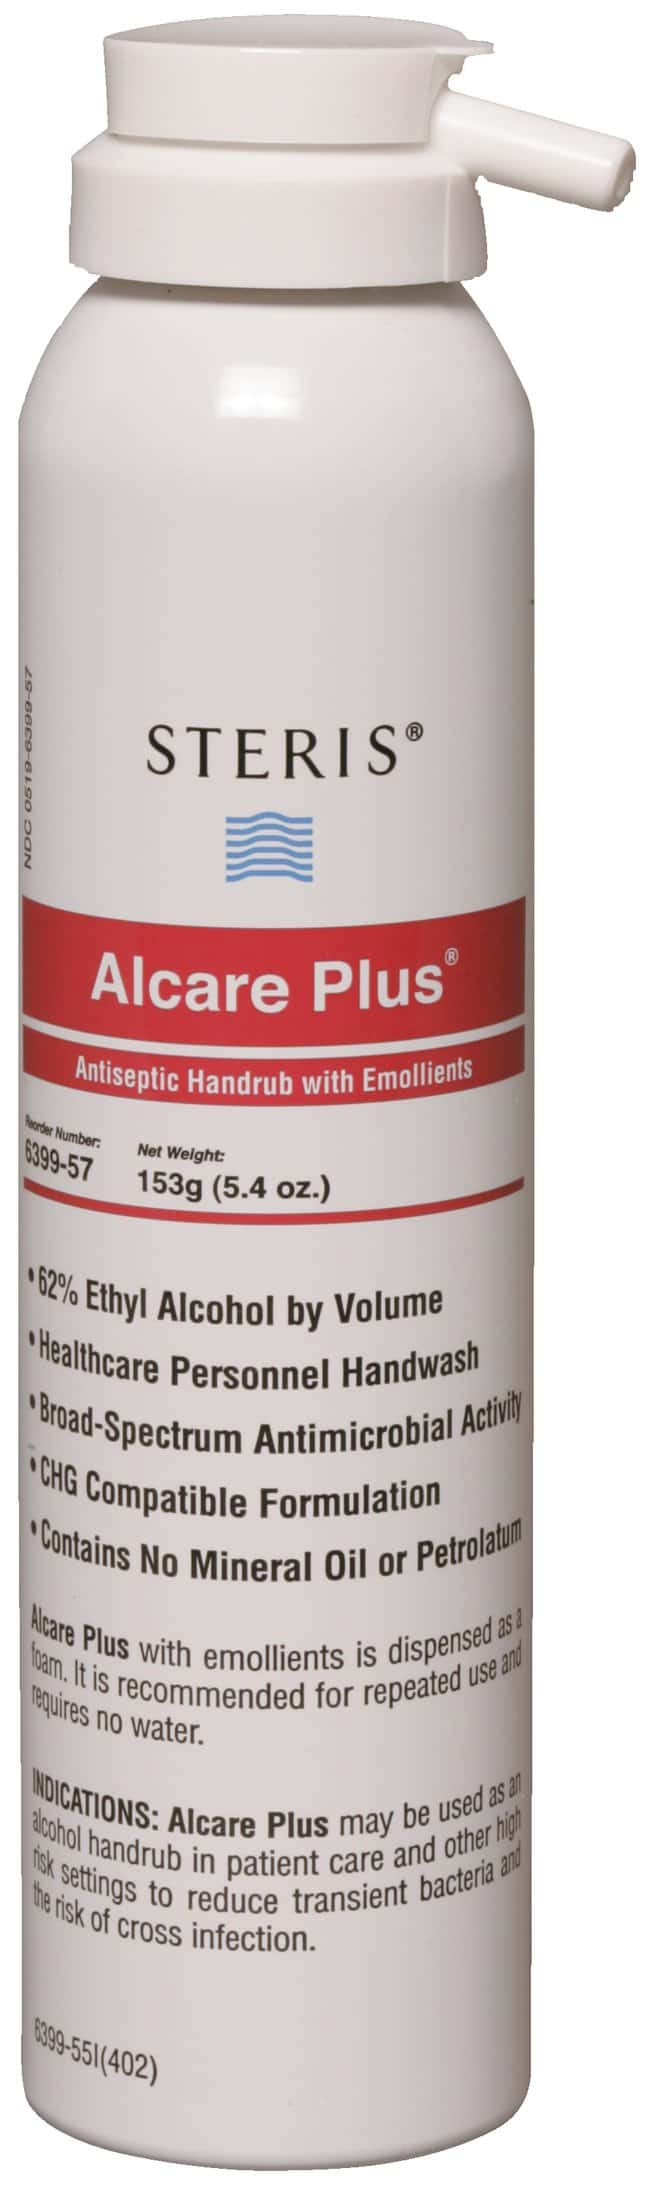 Steris Alcare Plus Antiseptic Handrub with Emollients 5-3/8 oz. (160mL):Gloves,